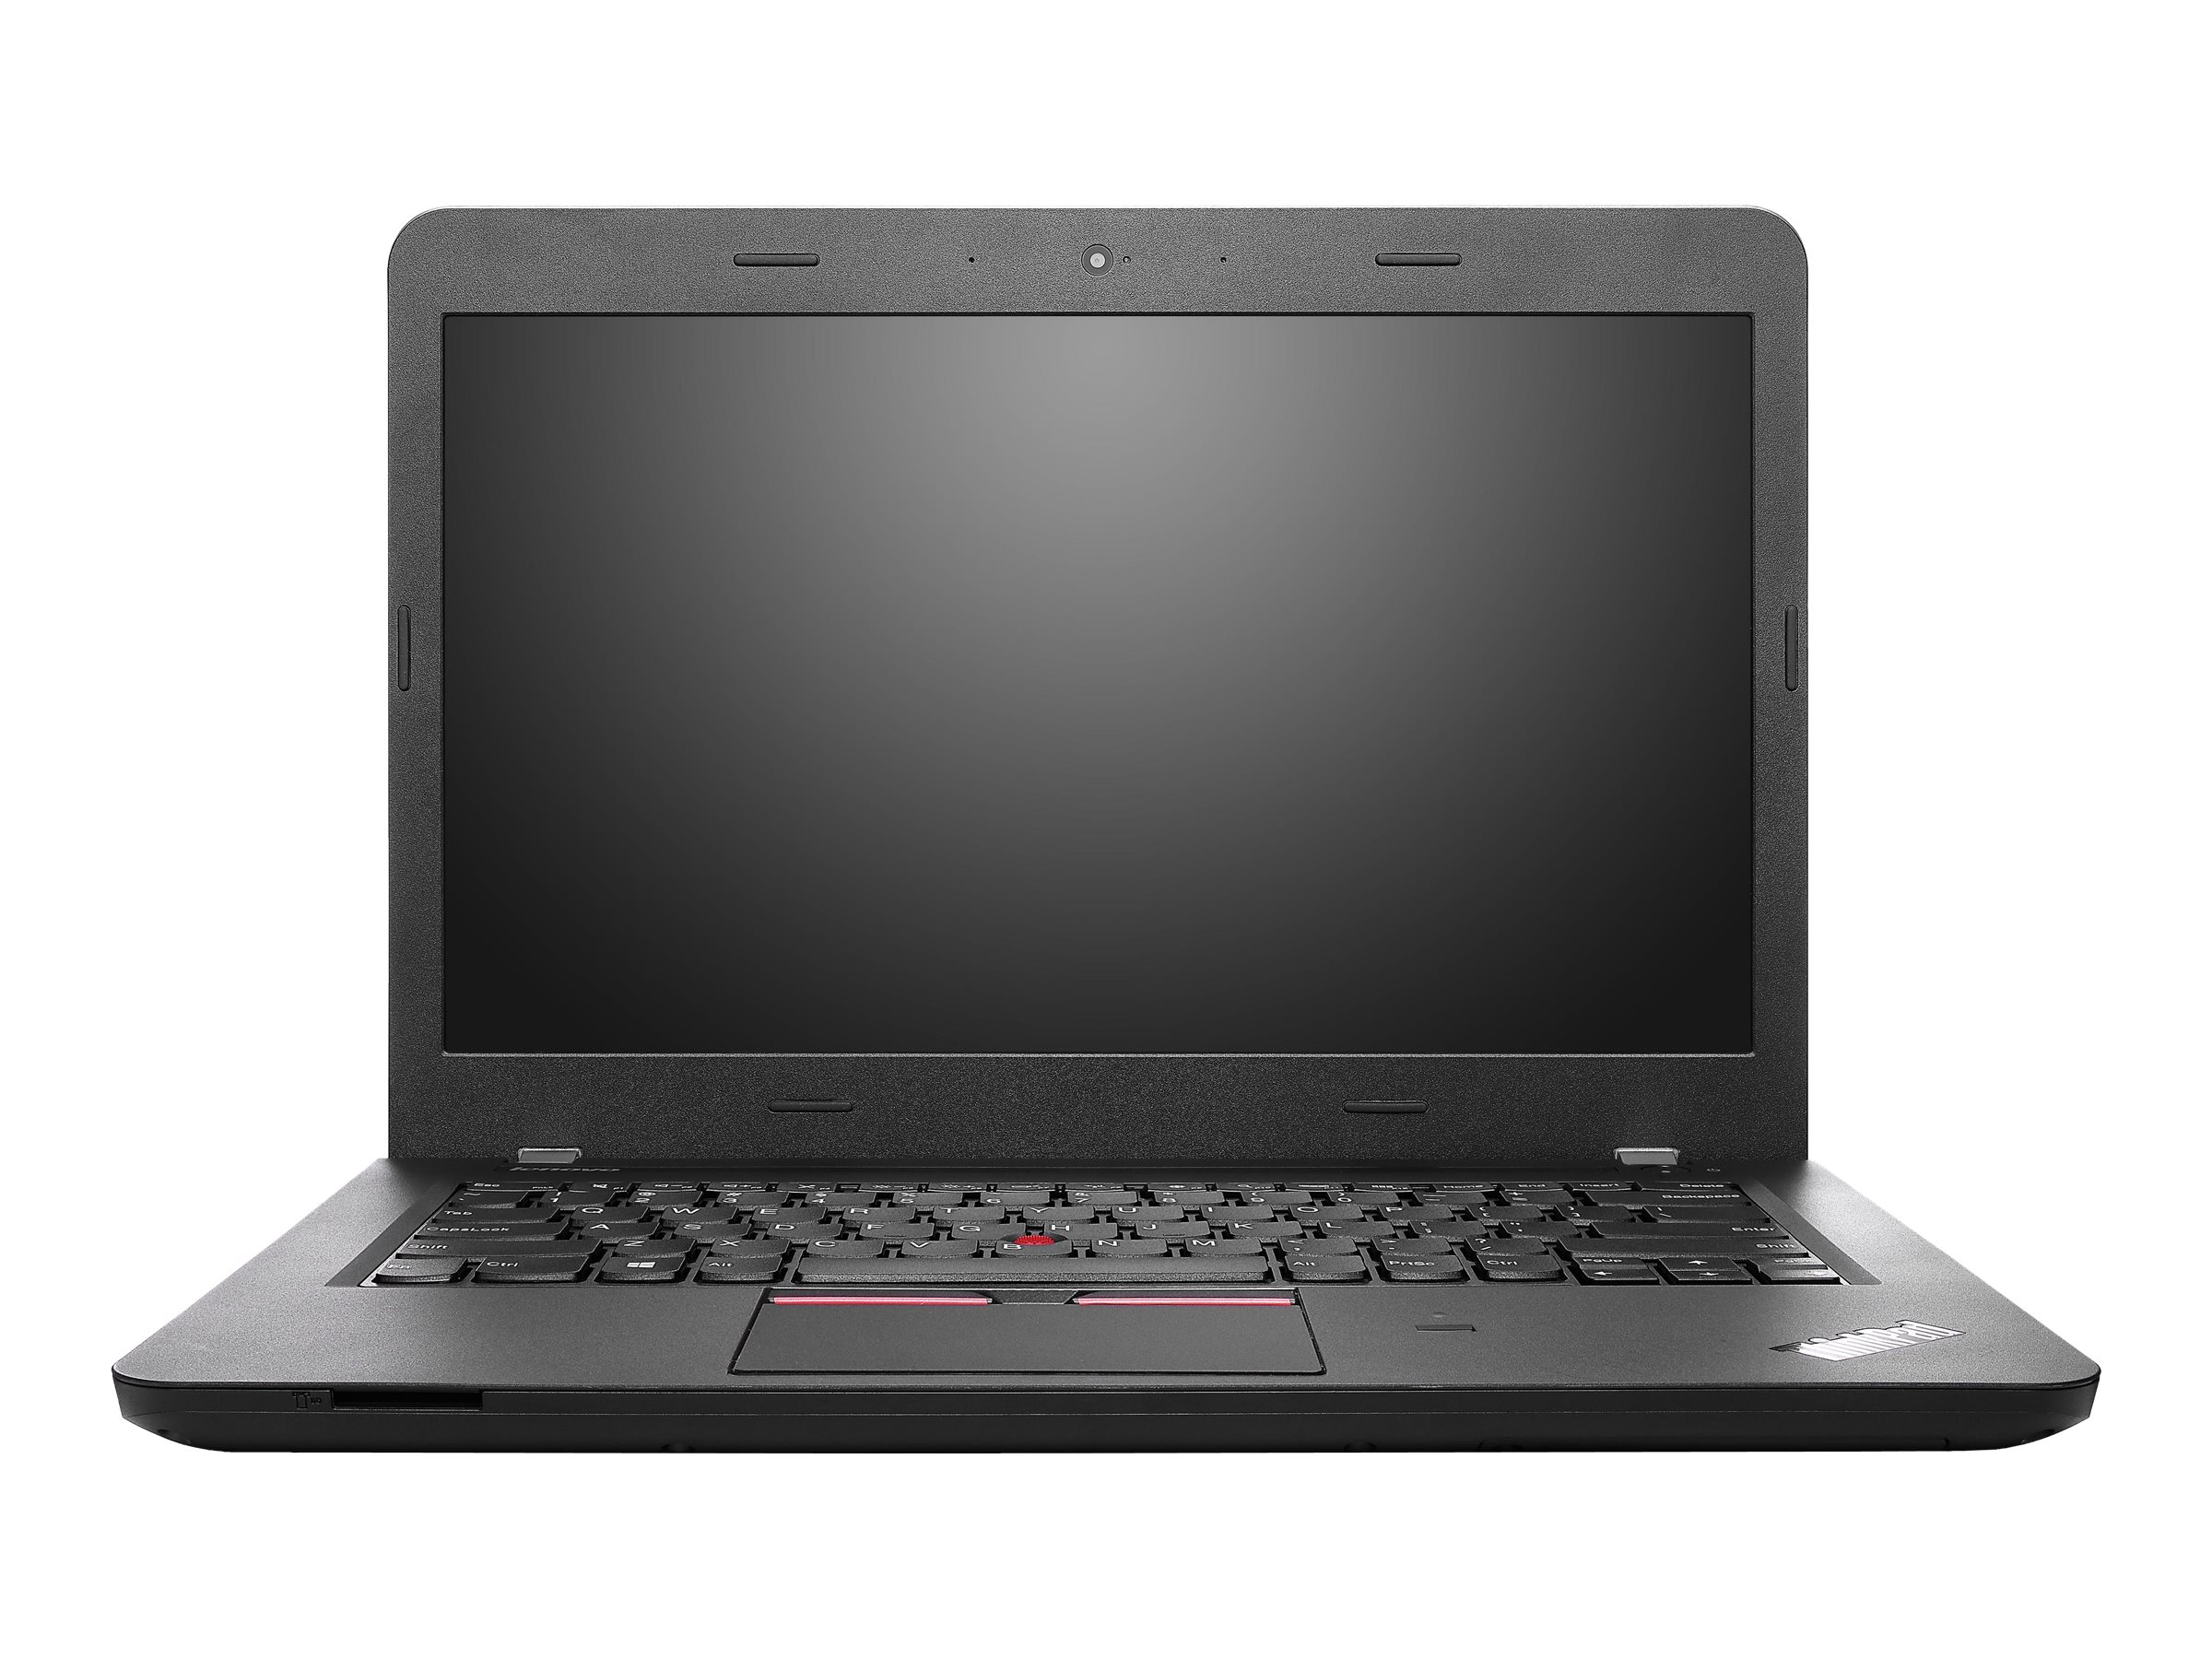 Lenovo TopSeller ThinkPad E450 2.0GHz Core i3 14in display, 20DC0047US